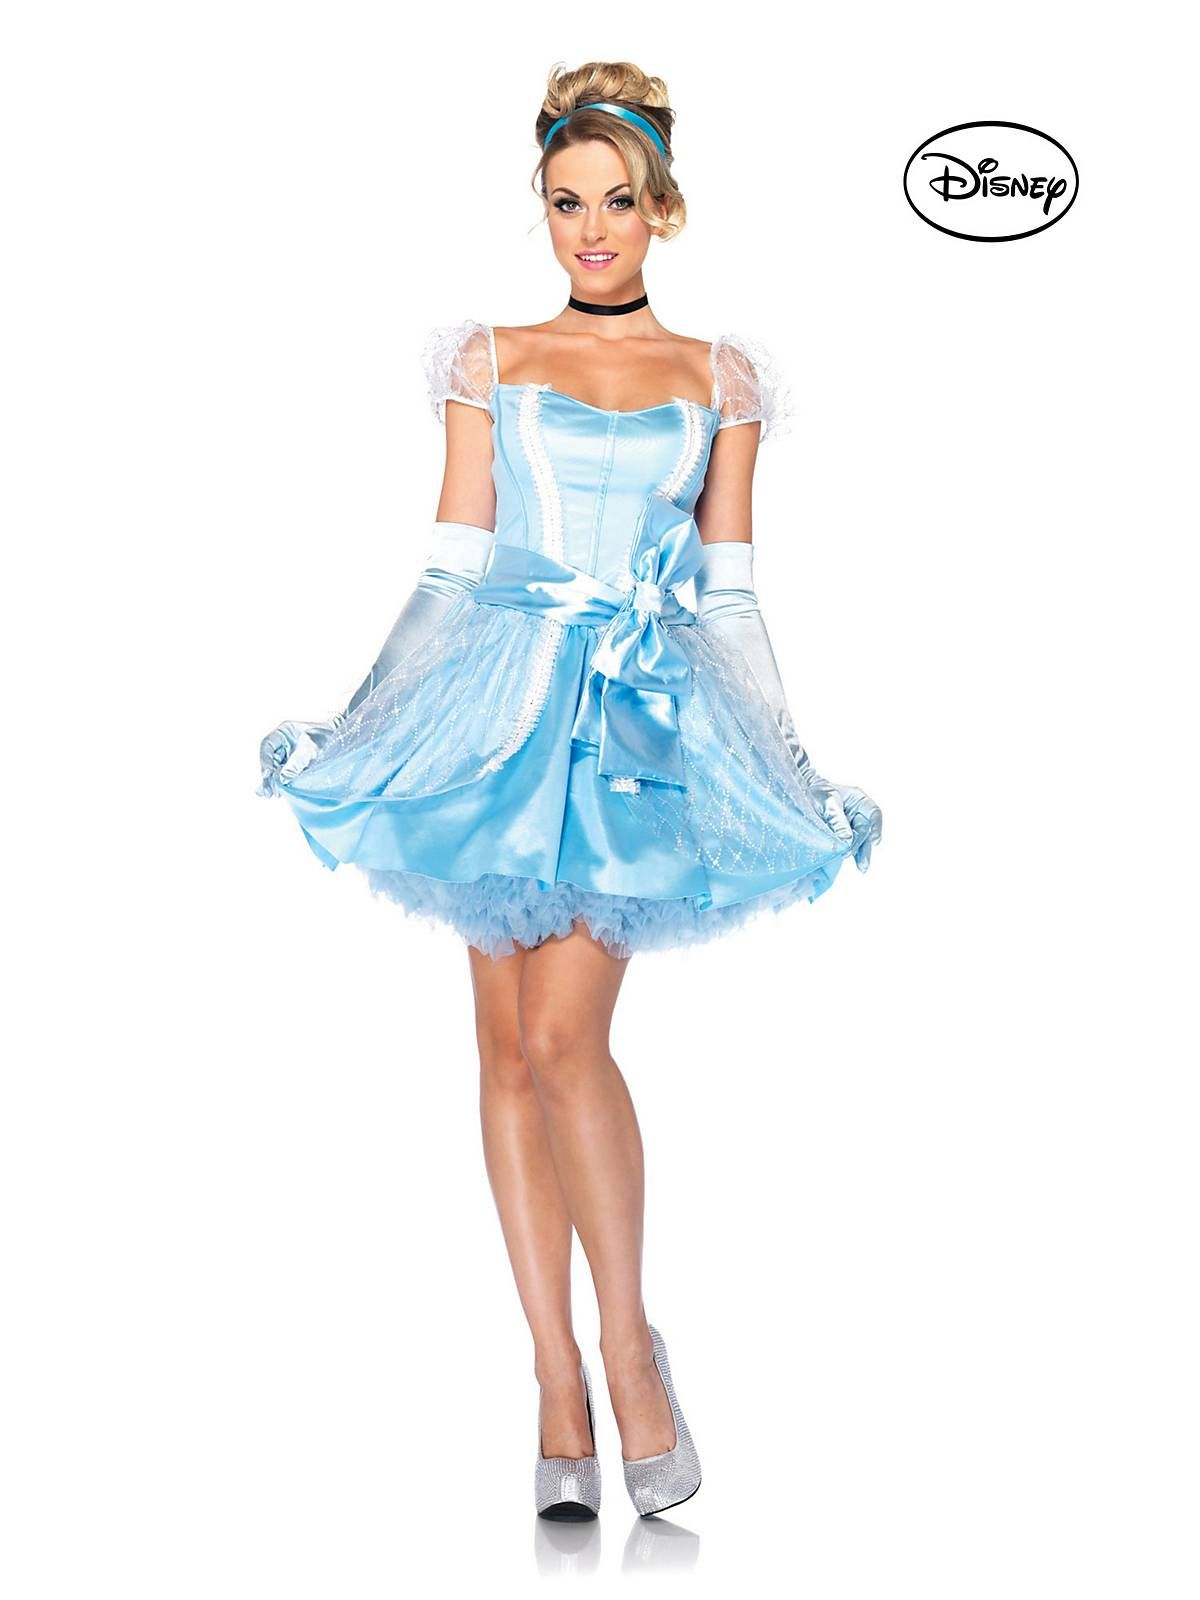 Home Custom Made New Design Adult Cinderella Princess Costumes Women Halloween Party Dress Cosplay Costumes